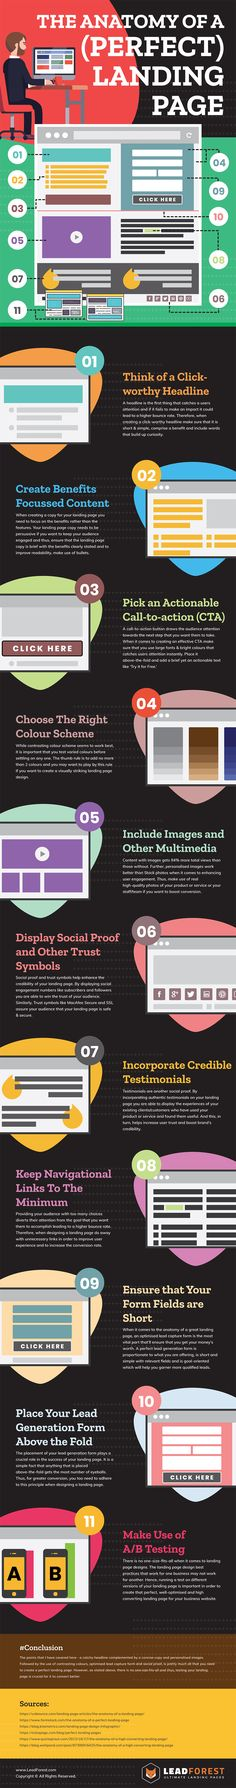 Web Design Tips: 11 Essential Elements for the Perfect Home Page [Infographic]